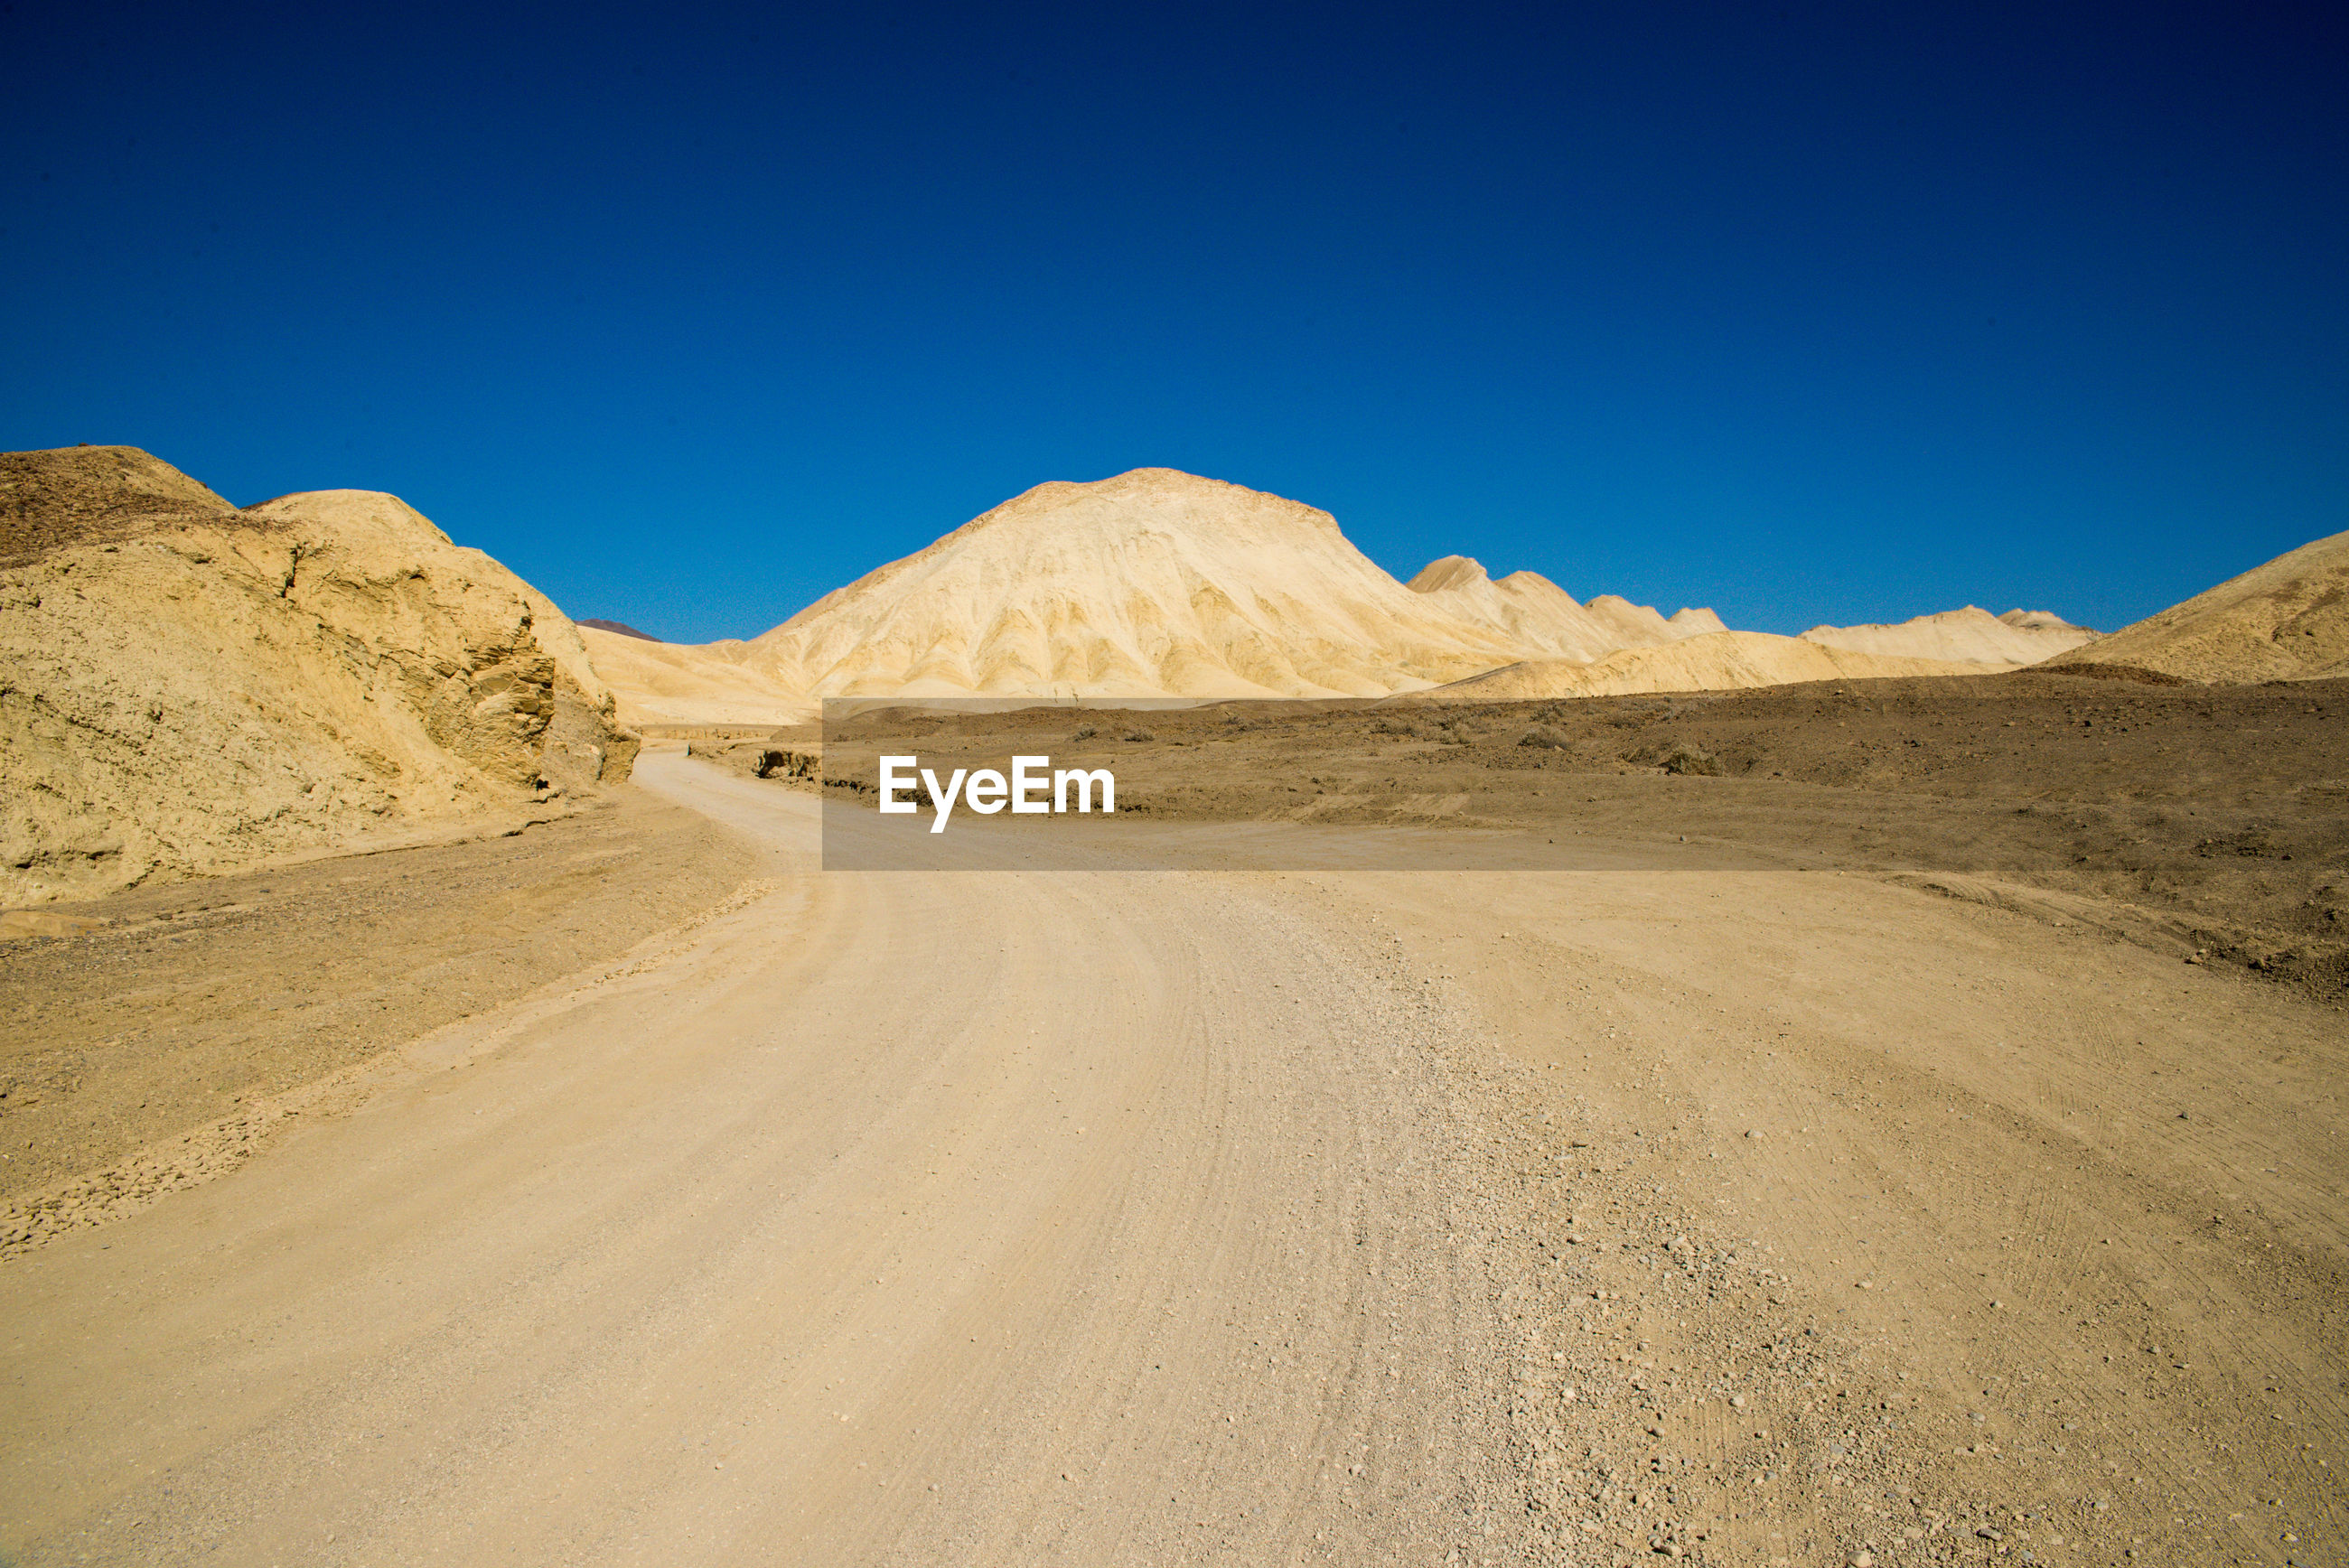 Scenic view of desert road against clear blue sky